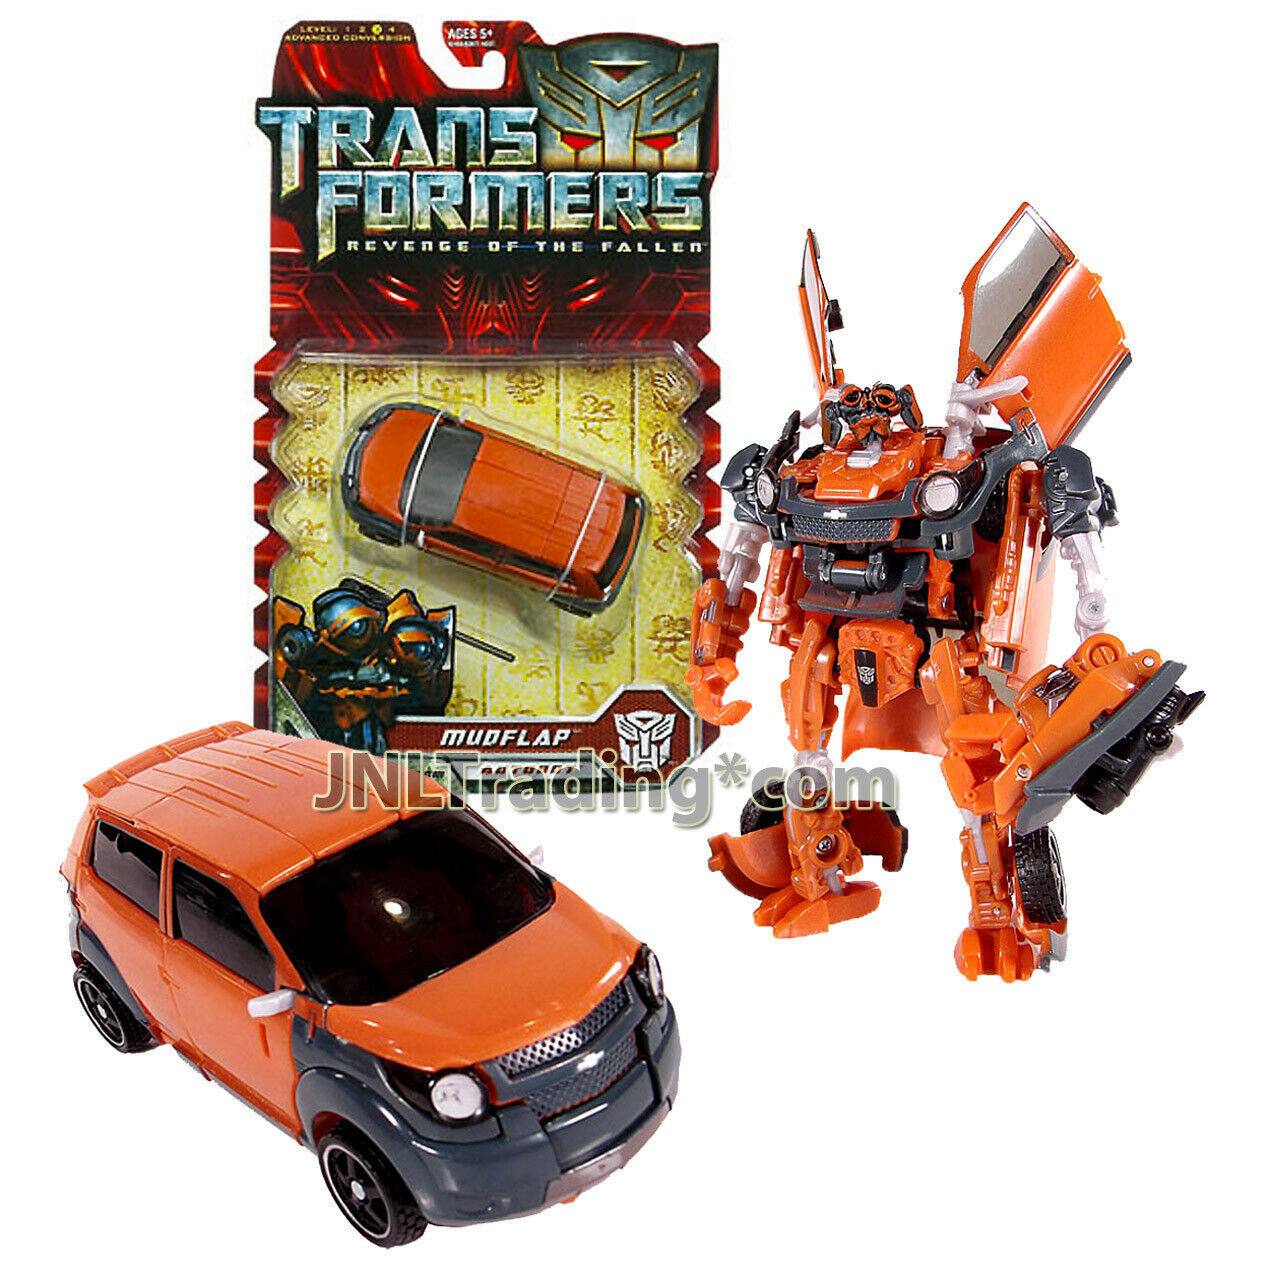 Year 2008 Transformers Revenge of the Ftuttien Deluxe classe cifra Autobot MUDFLAP